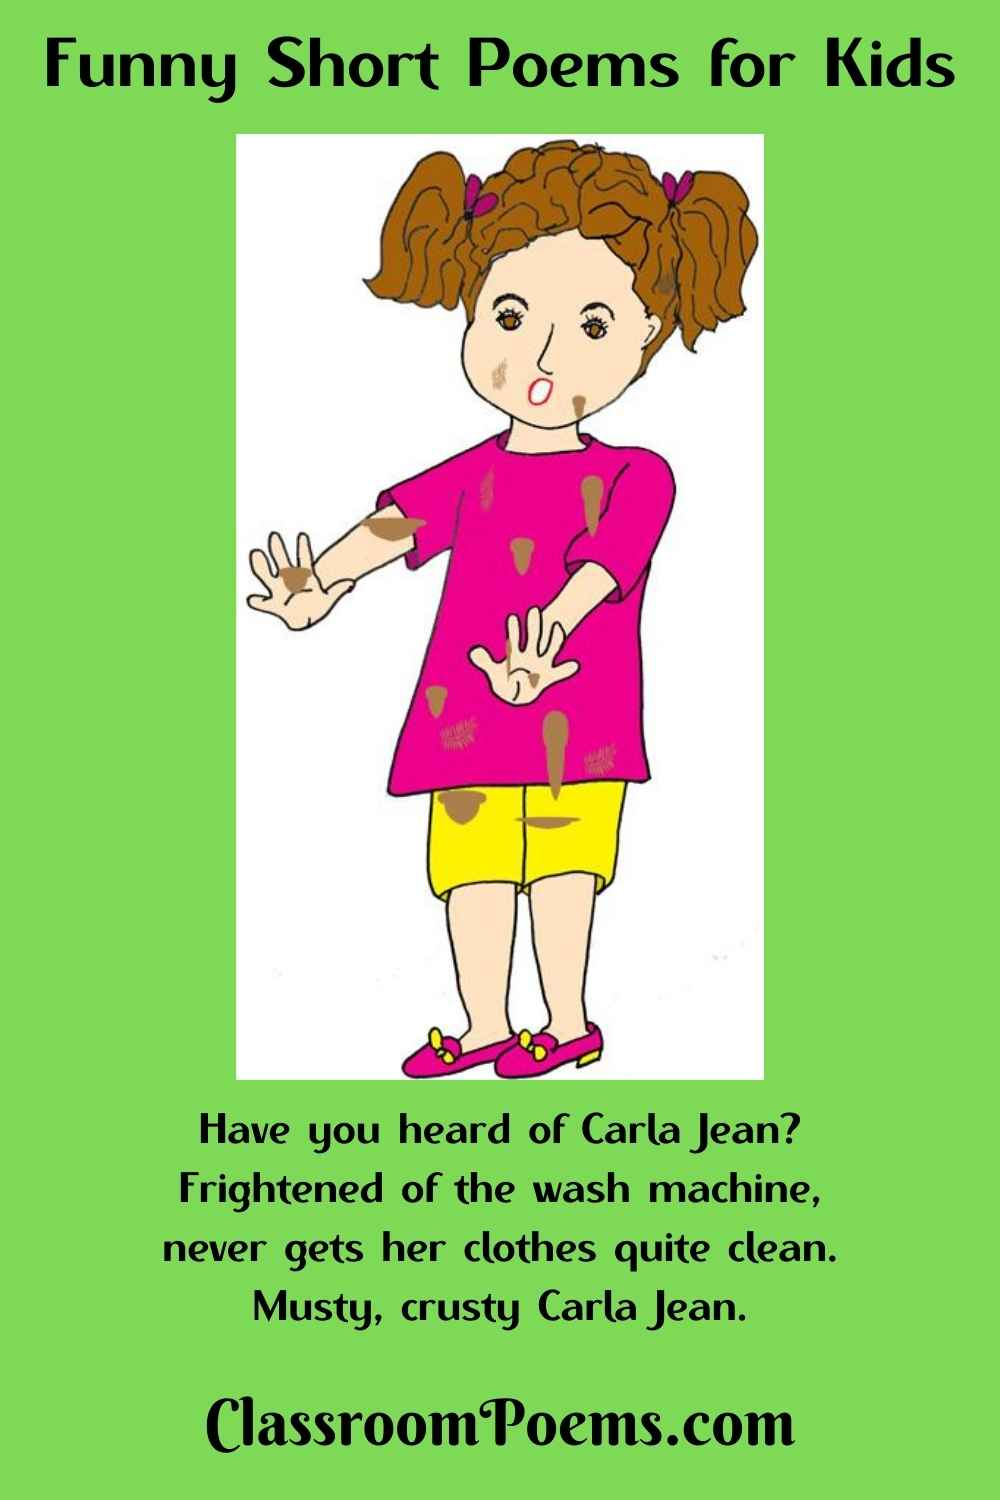 Dirty girl cartoon. CARLA JEAN, a funny short poem by Denise Rodgers on ClassroomPoems.com.